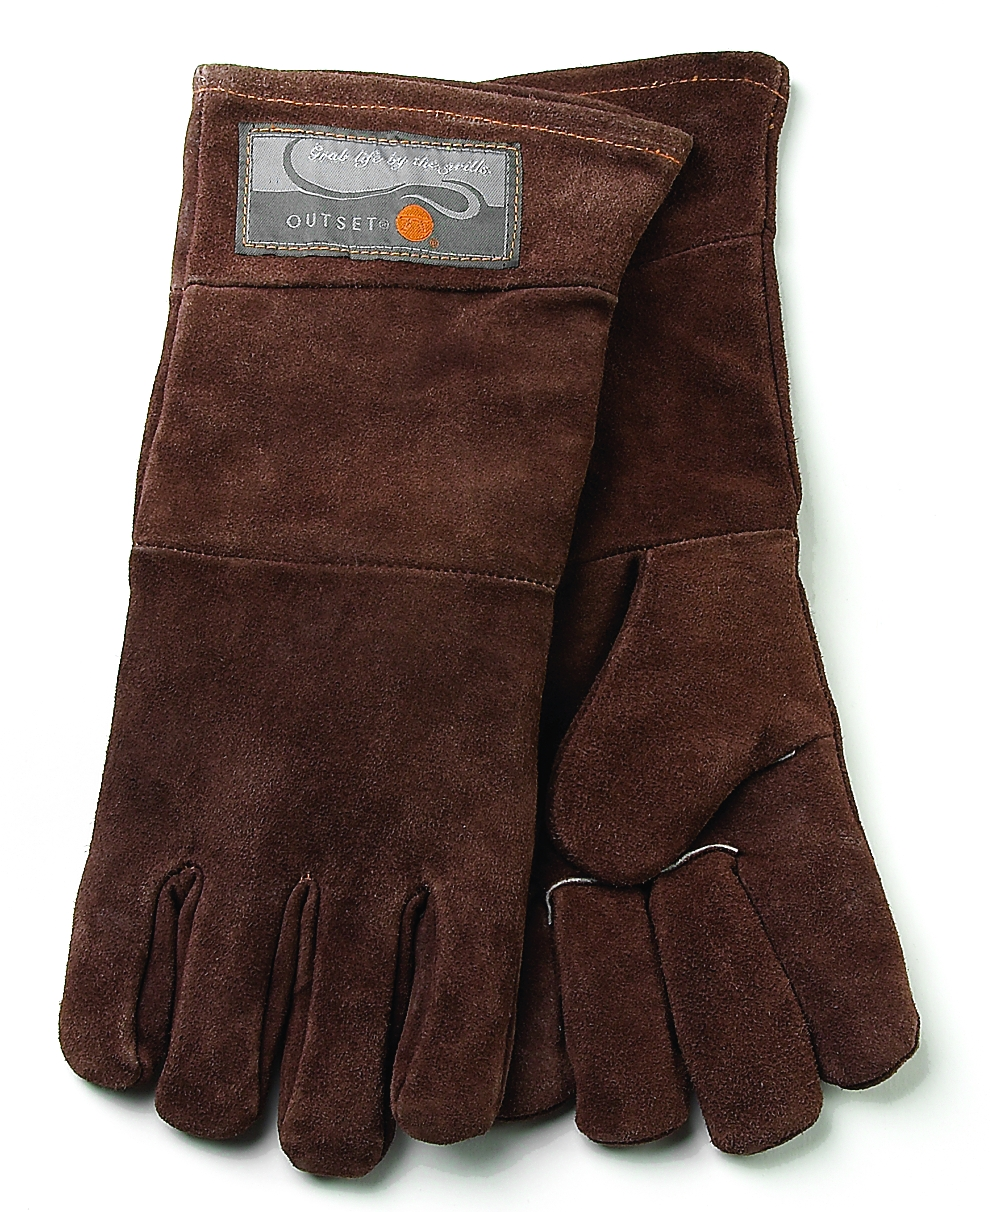 Outset Leather Grill Gloves, Set of 2